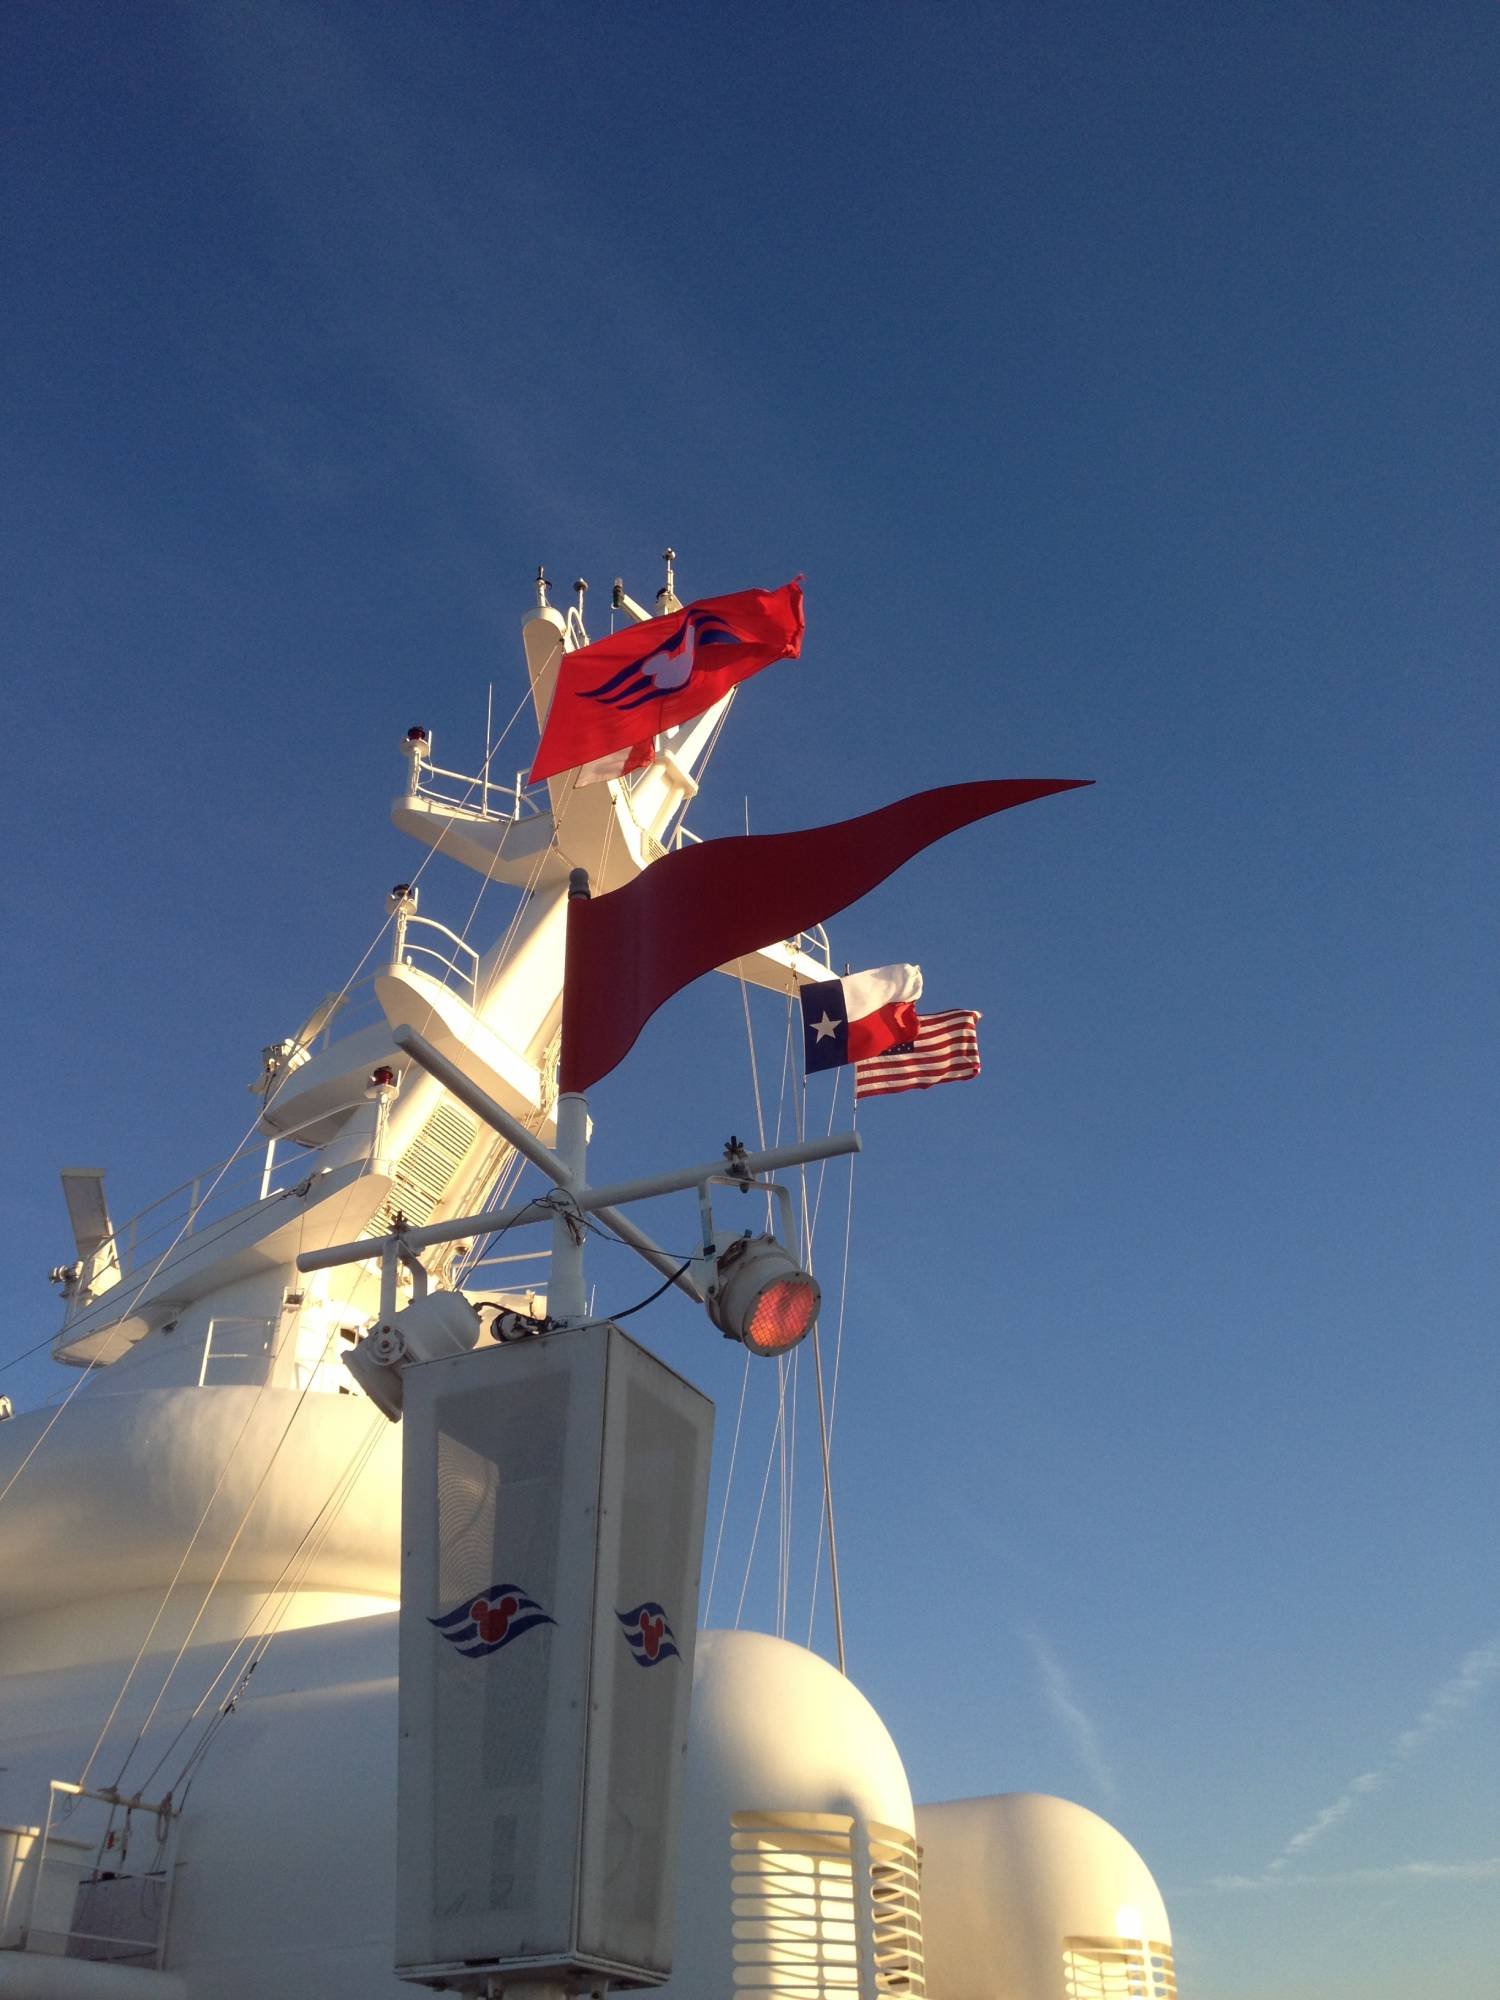 Learn more about sailing on the Disney Cruise Line from Galveston, Texas |PassPorter.com